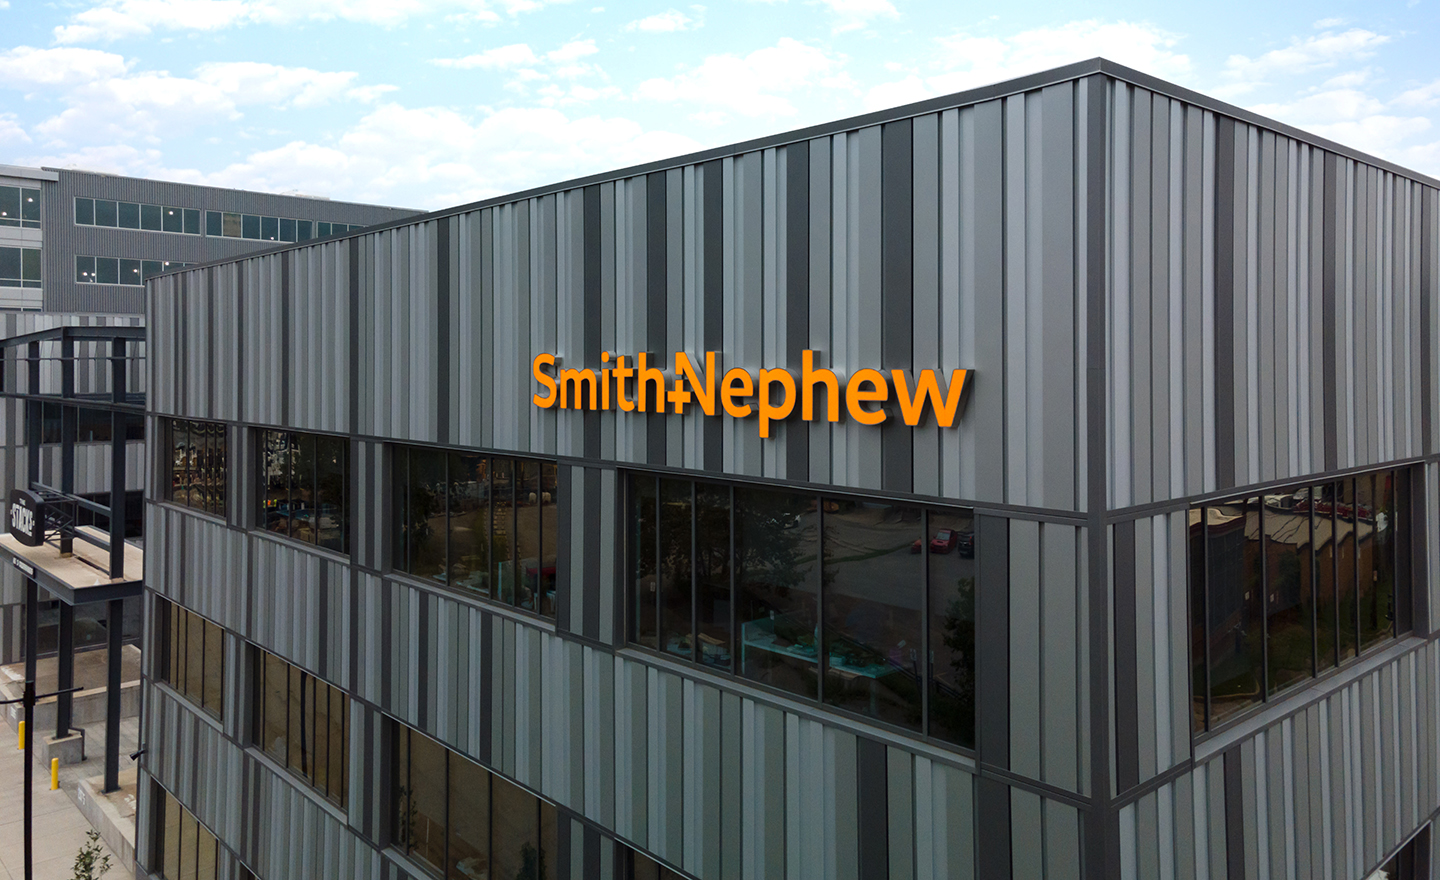 Smith&Nephew Sky Sign